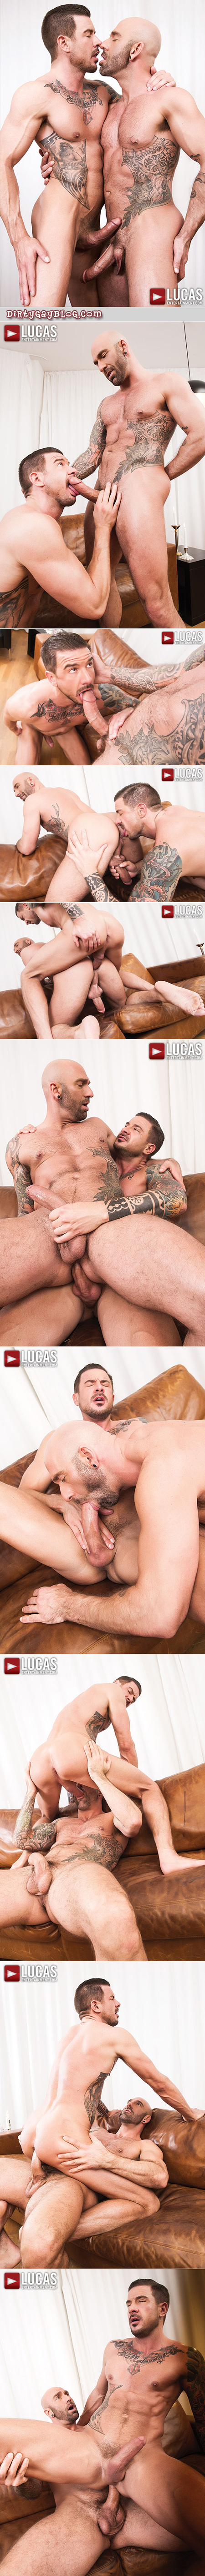 Gay porn stars and real-life boyfriends fucking bareback.